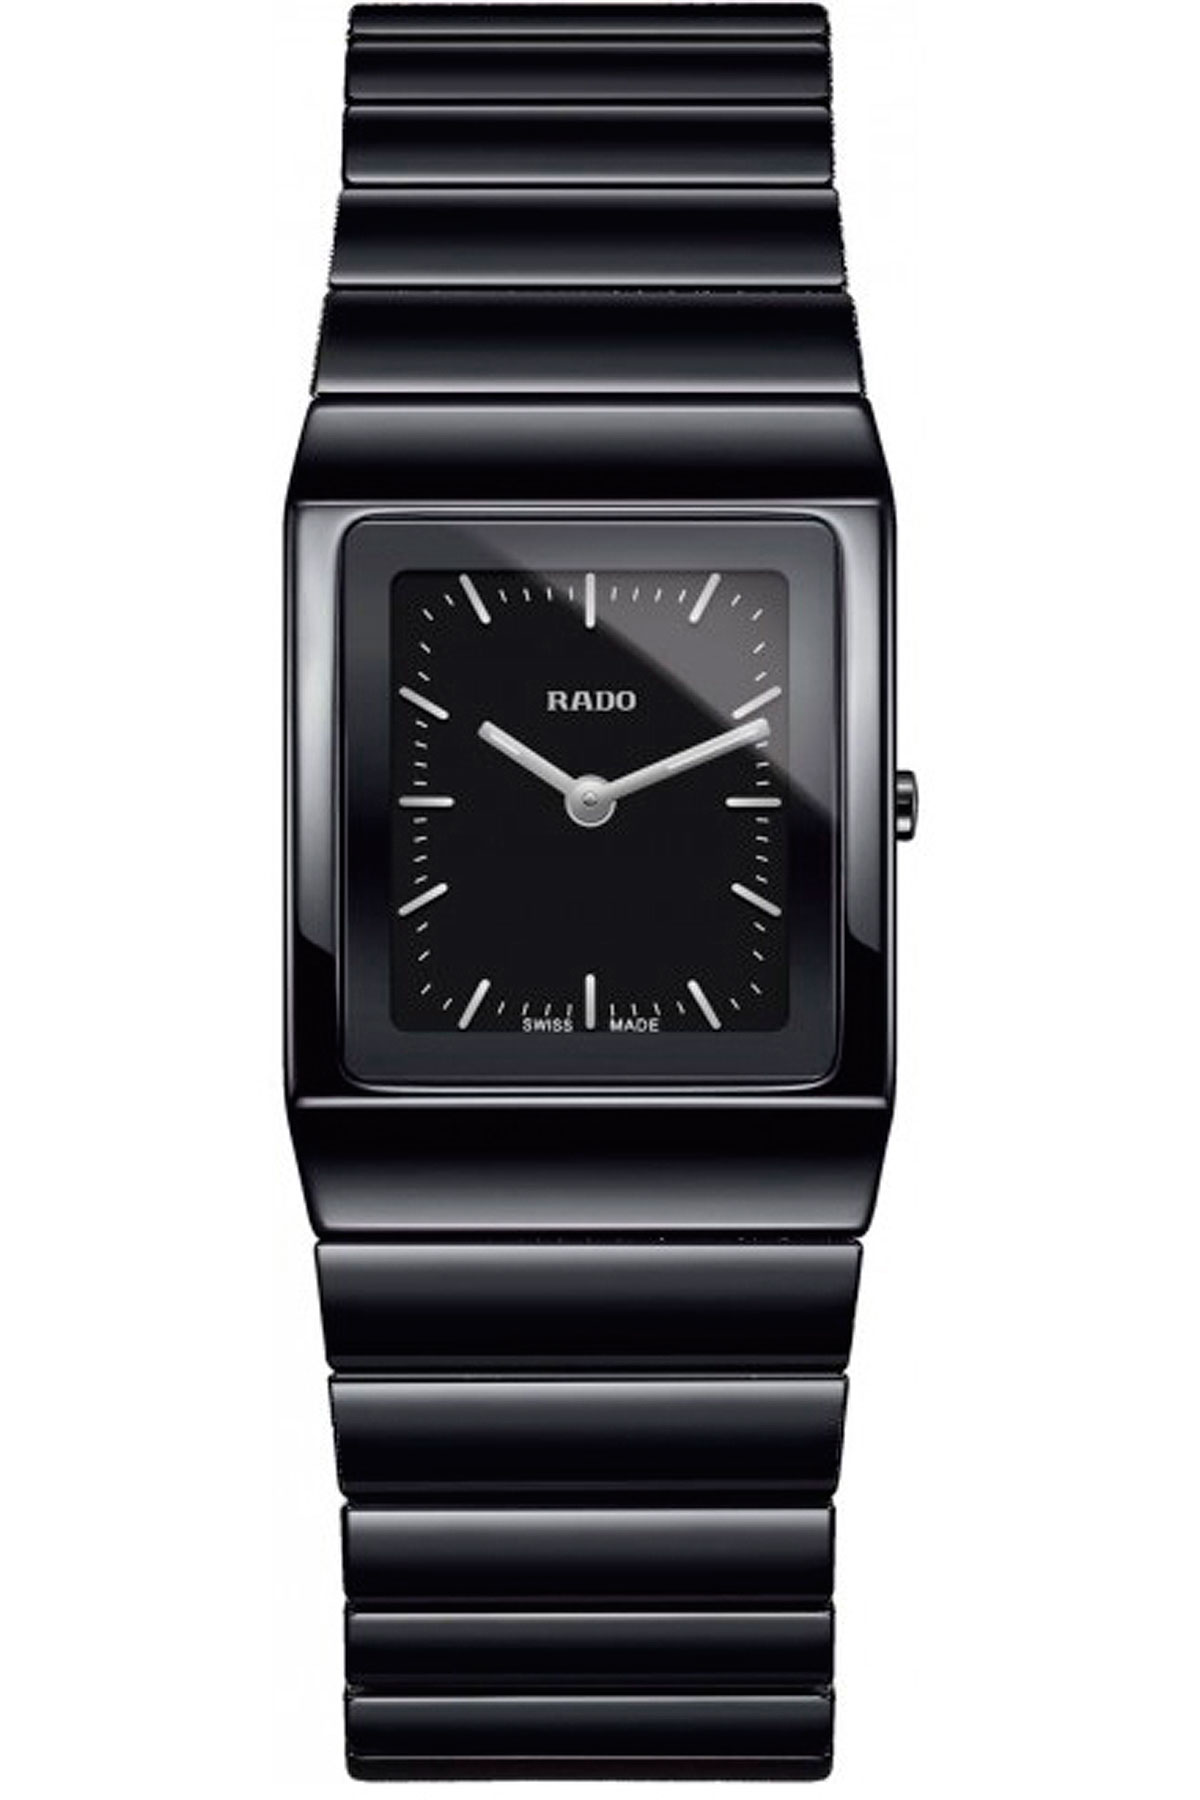 Rado Watch for Women, Black, High-Tech Ceramic, 2019